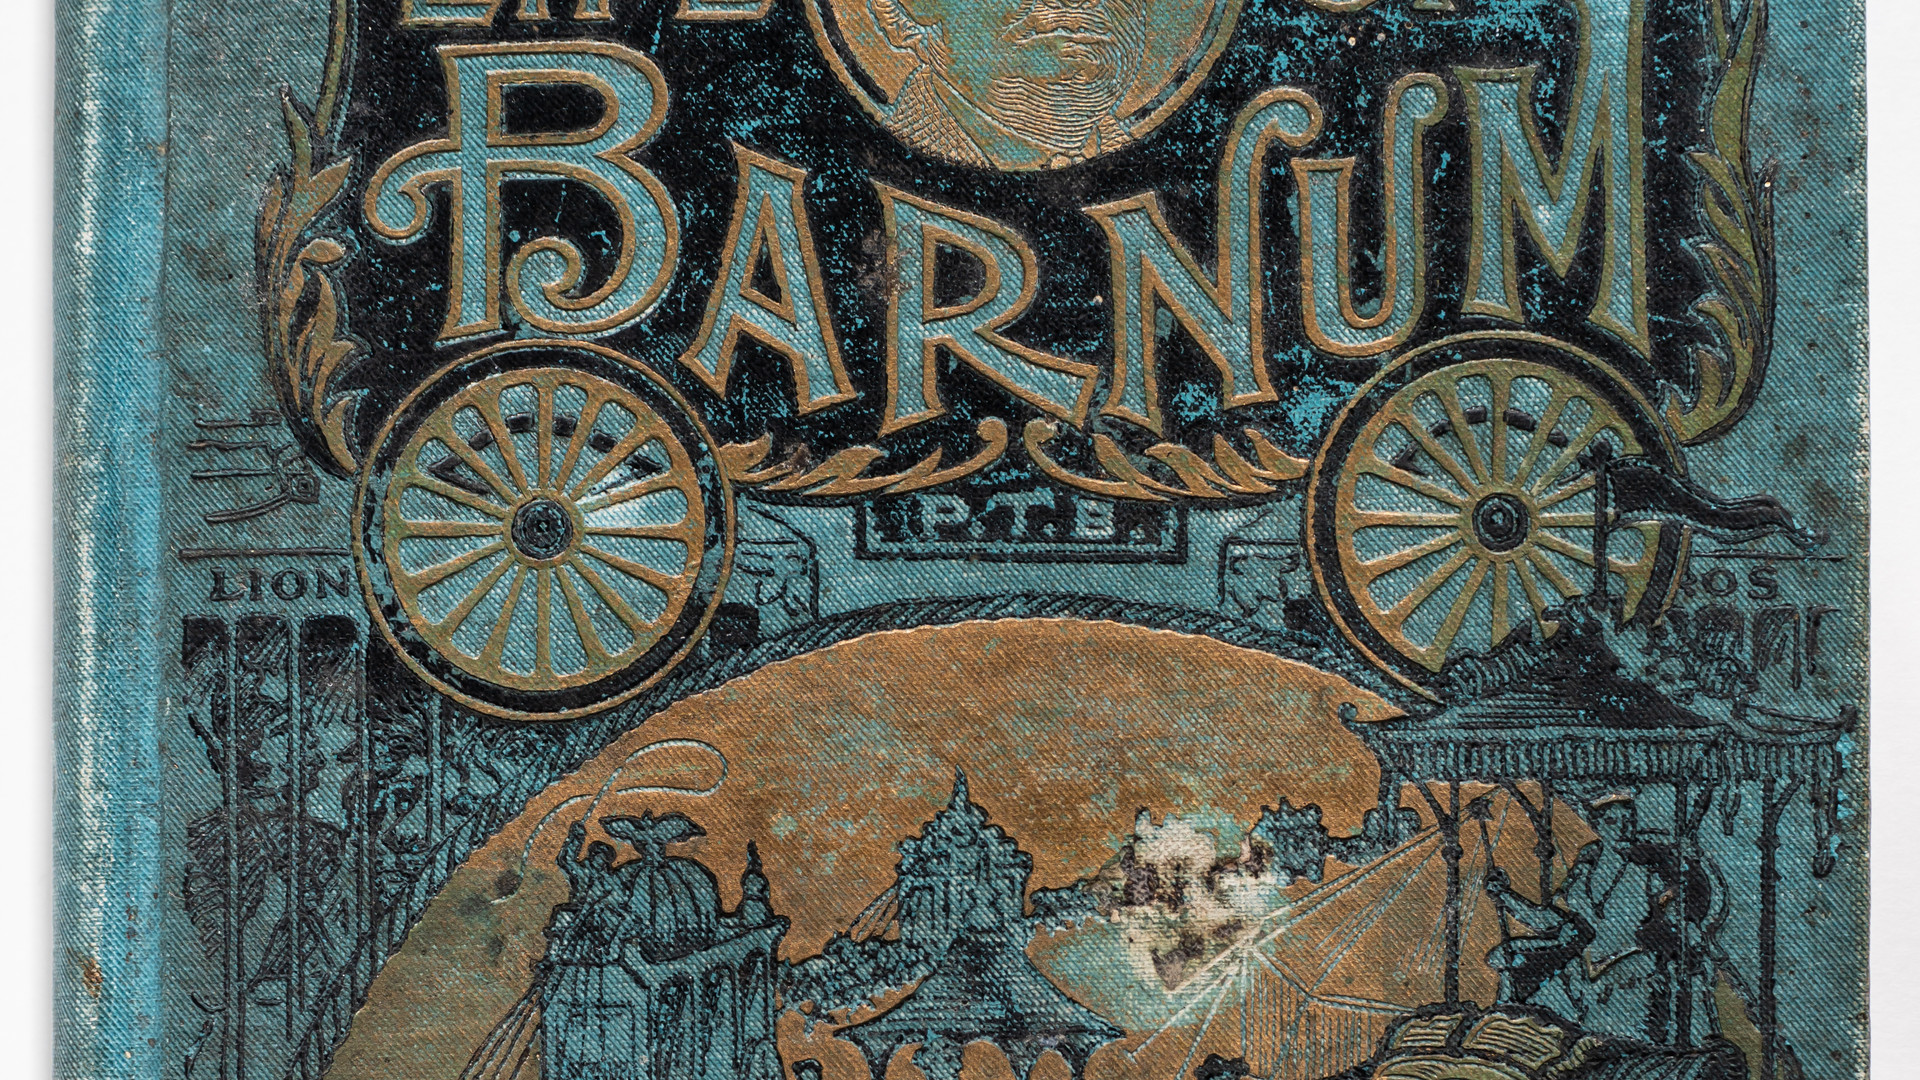 Life of Barnum Biography, date unknown